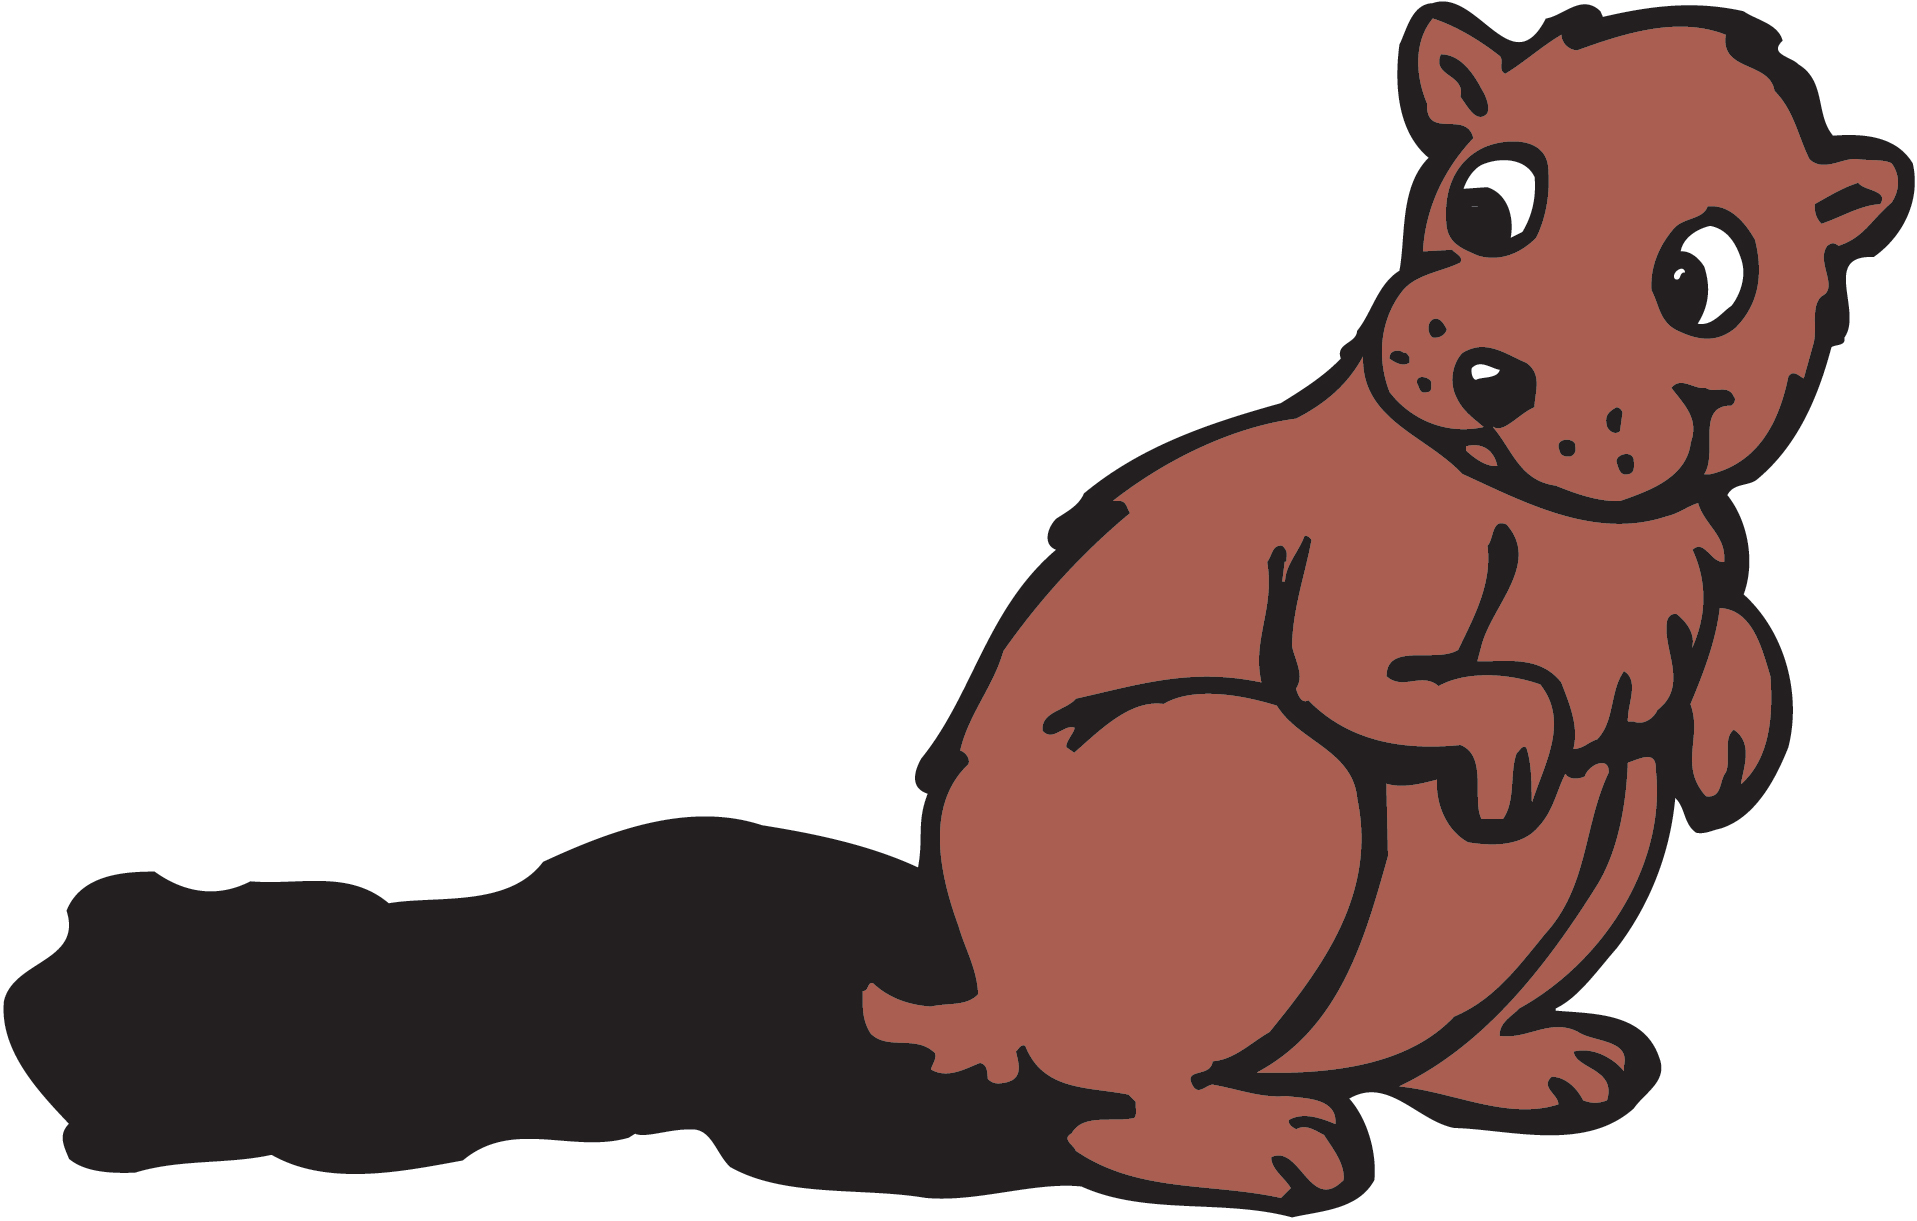 1917x1221 Groundhog Clipart Cartoon